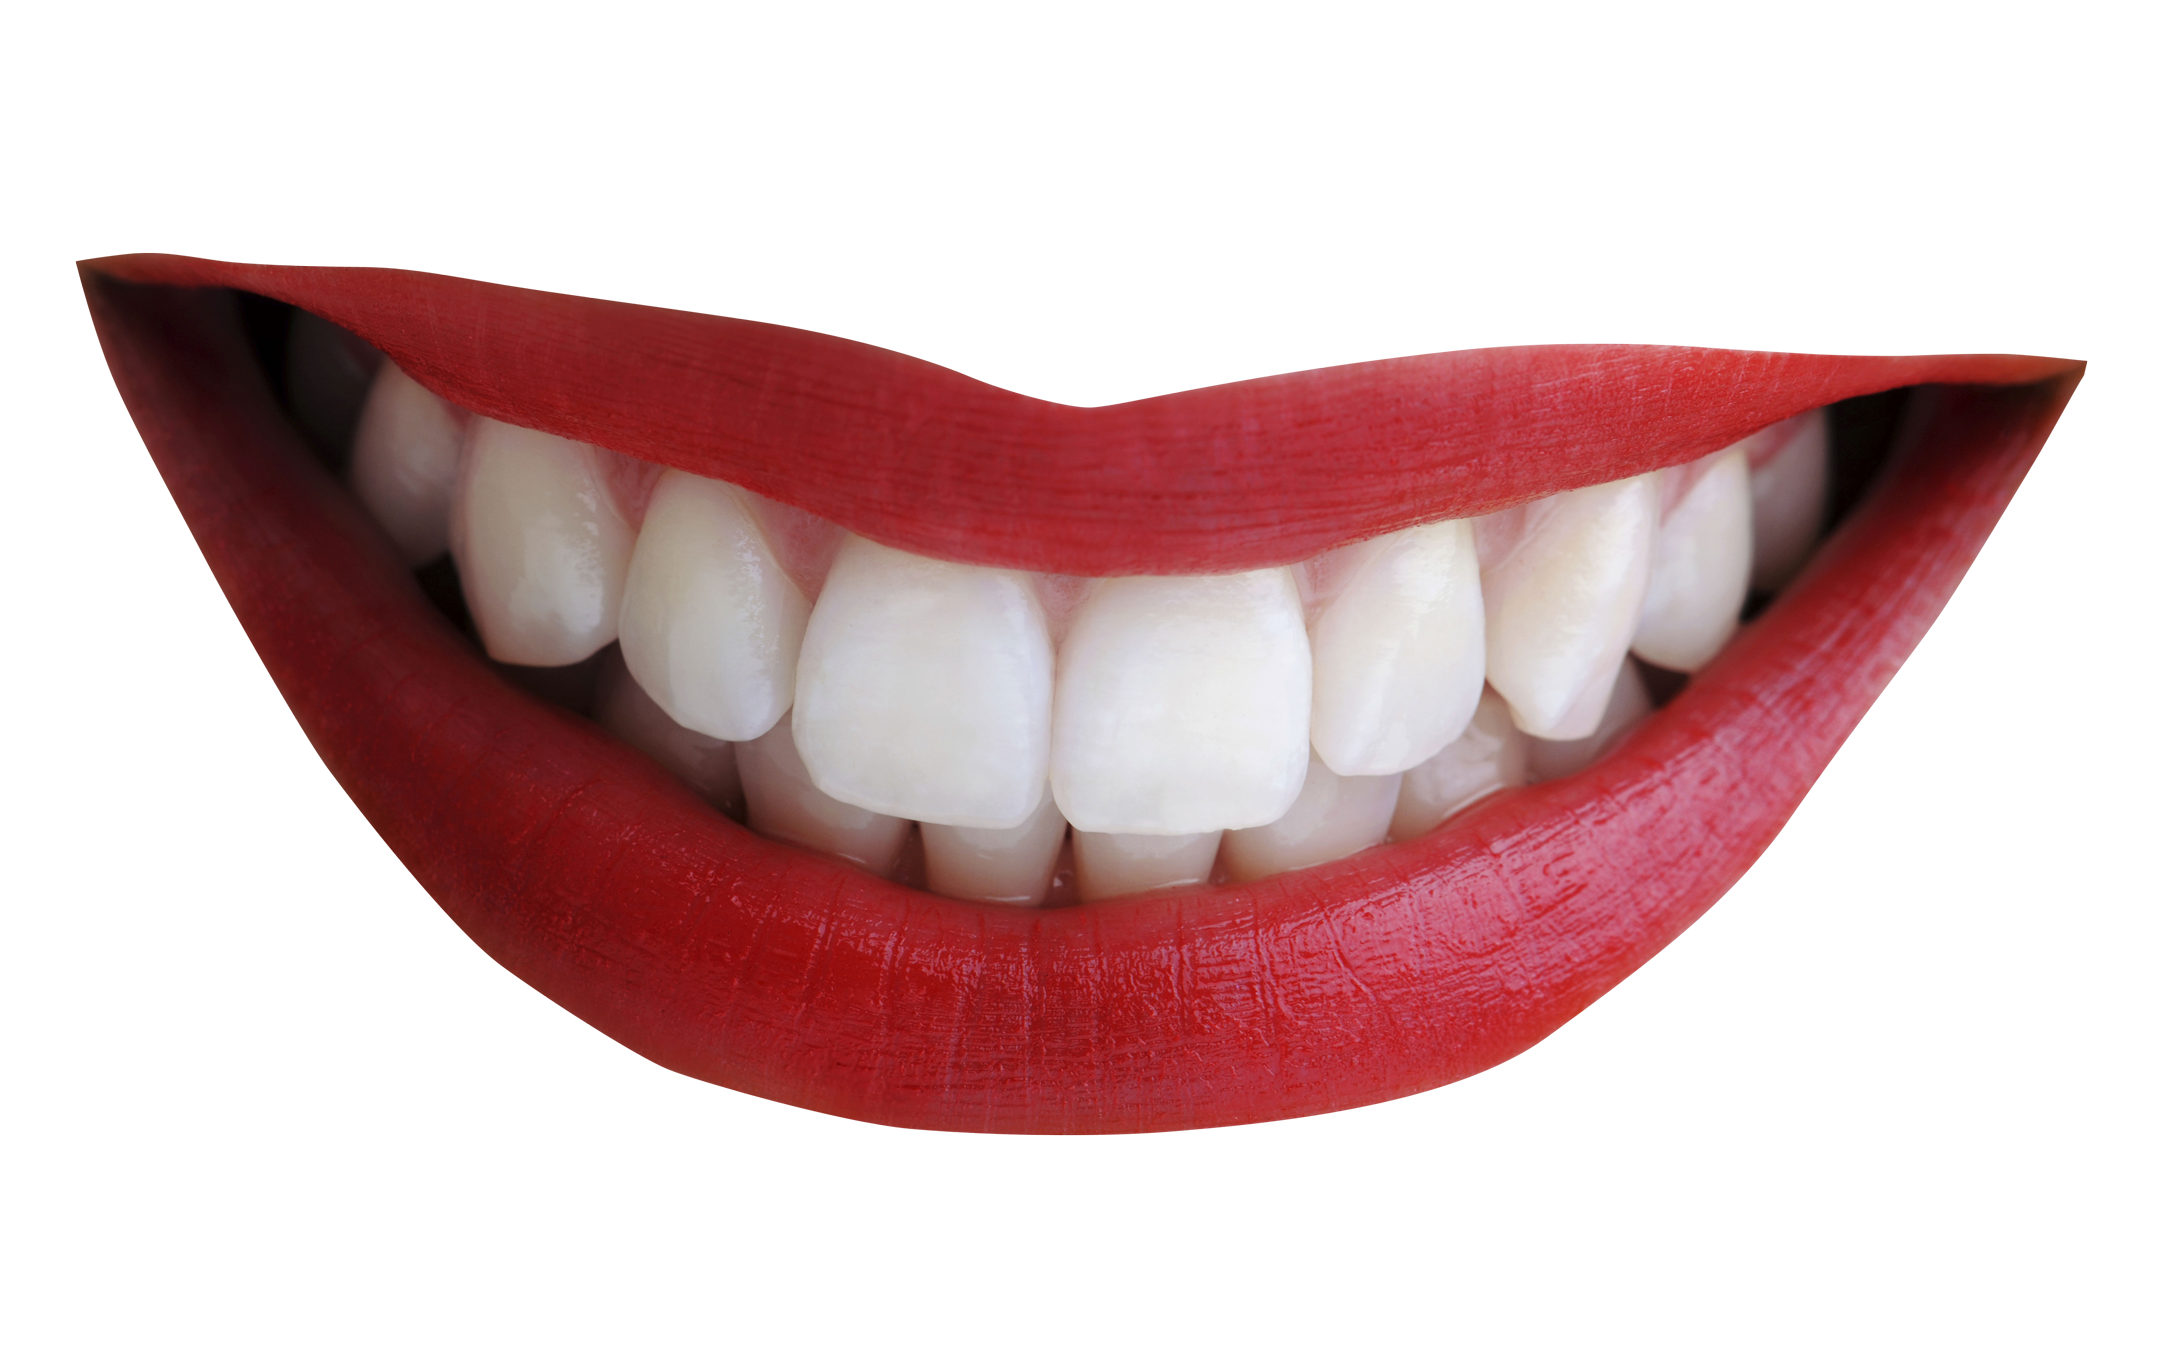 Teeth Png Transparent Image - Smile Lips, Transparent background PNG HD thumbnail